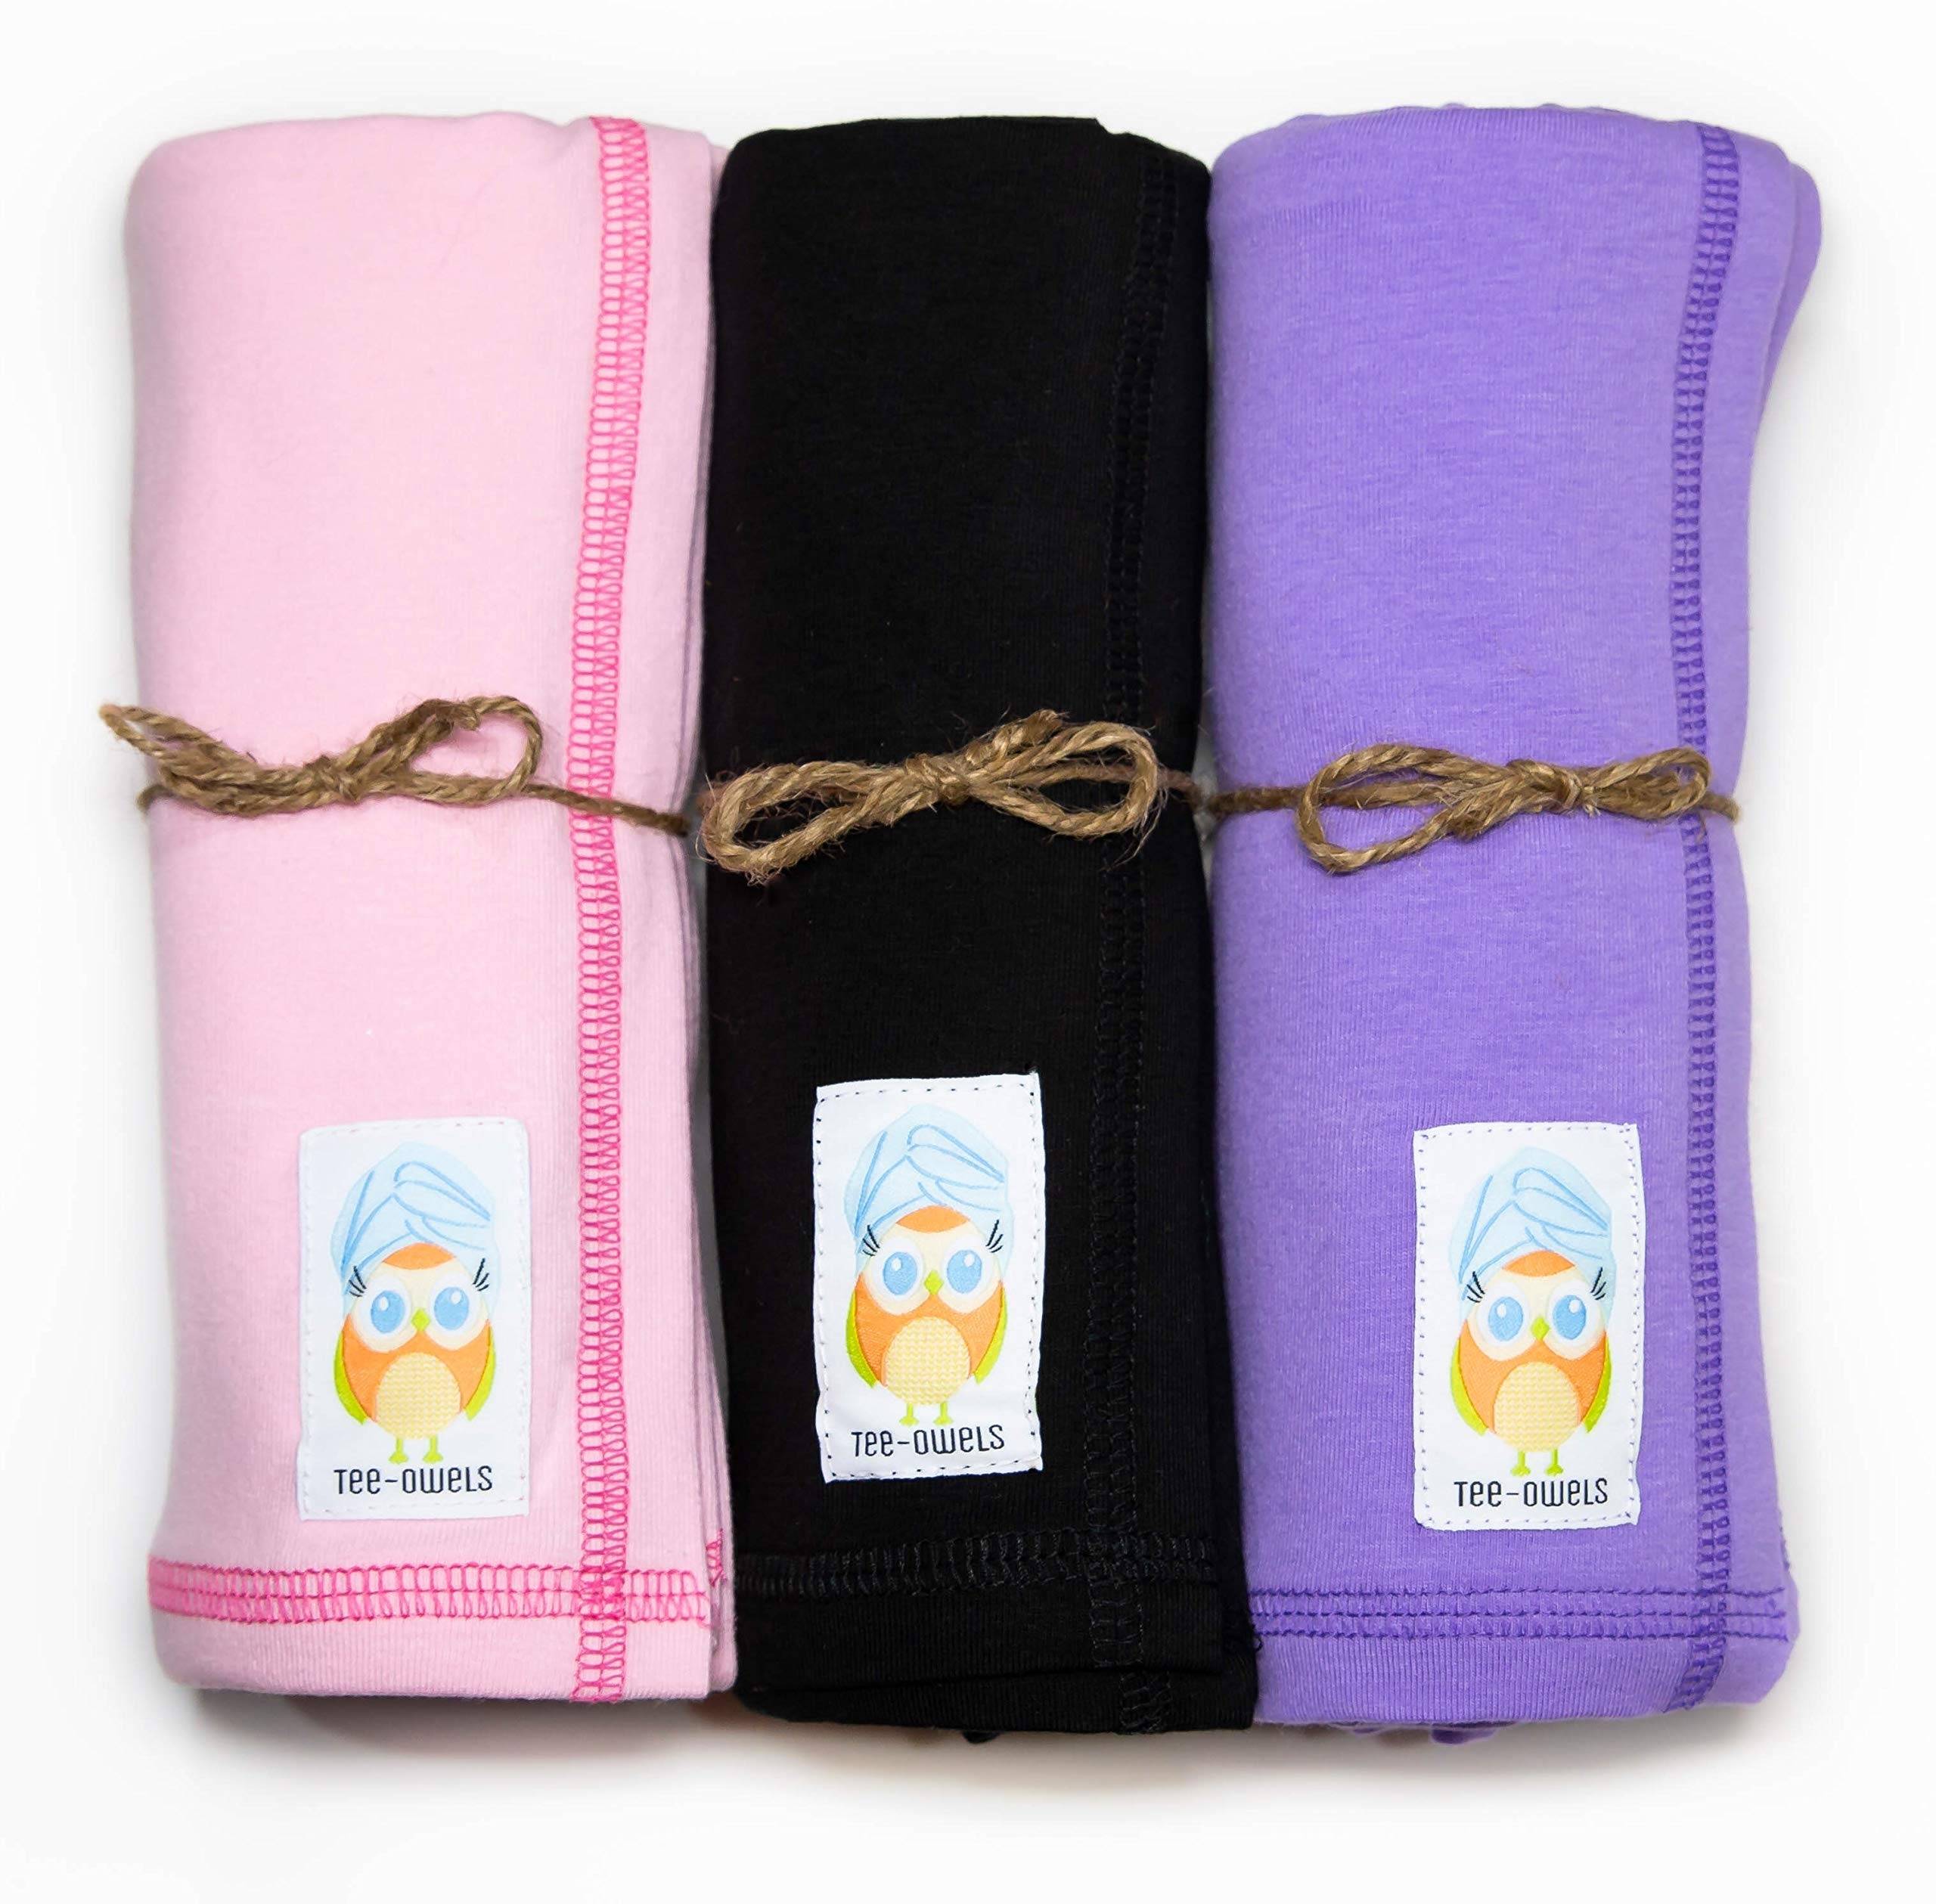 Tee-Owels Sassy+ Combo (Shoulder to Longer) - 3 Pack of Ideal Cotton T-Shirt Hair Towels for Natural and Curly Hair Care - Promotes Healthy Hair by Preventing Damage, Breakage, and Frizz